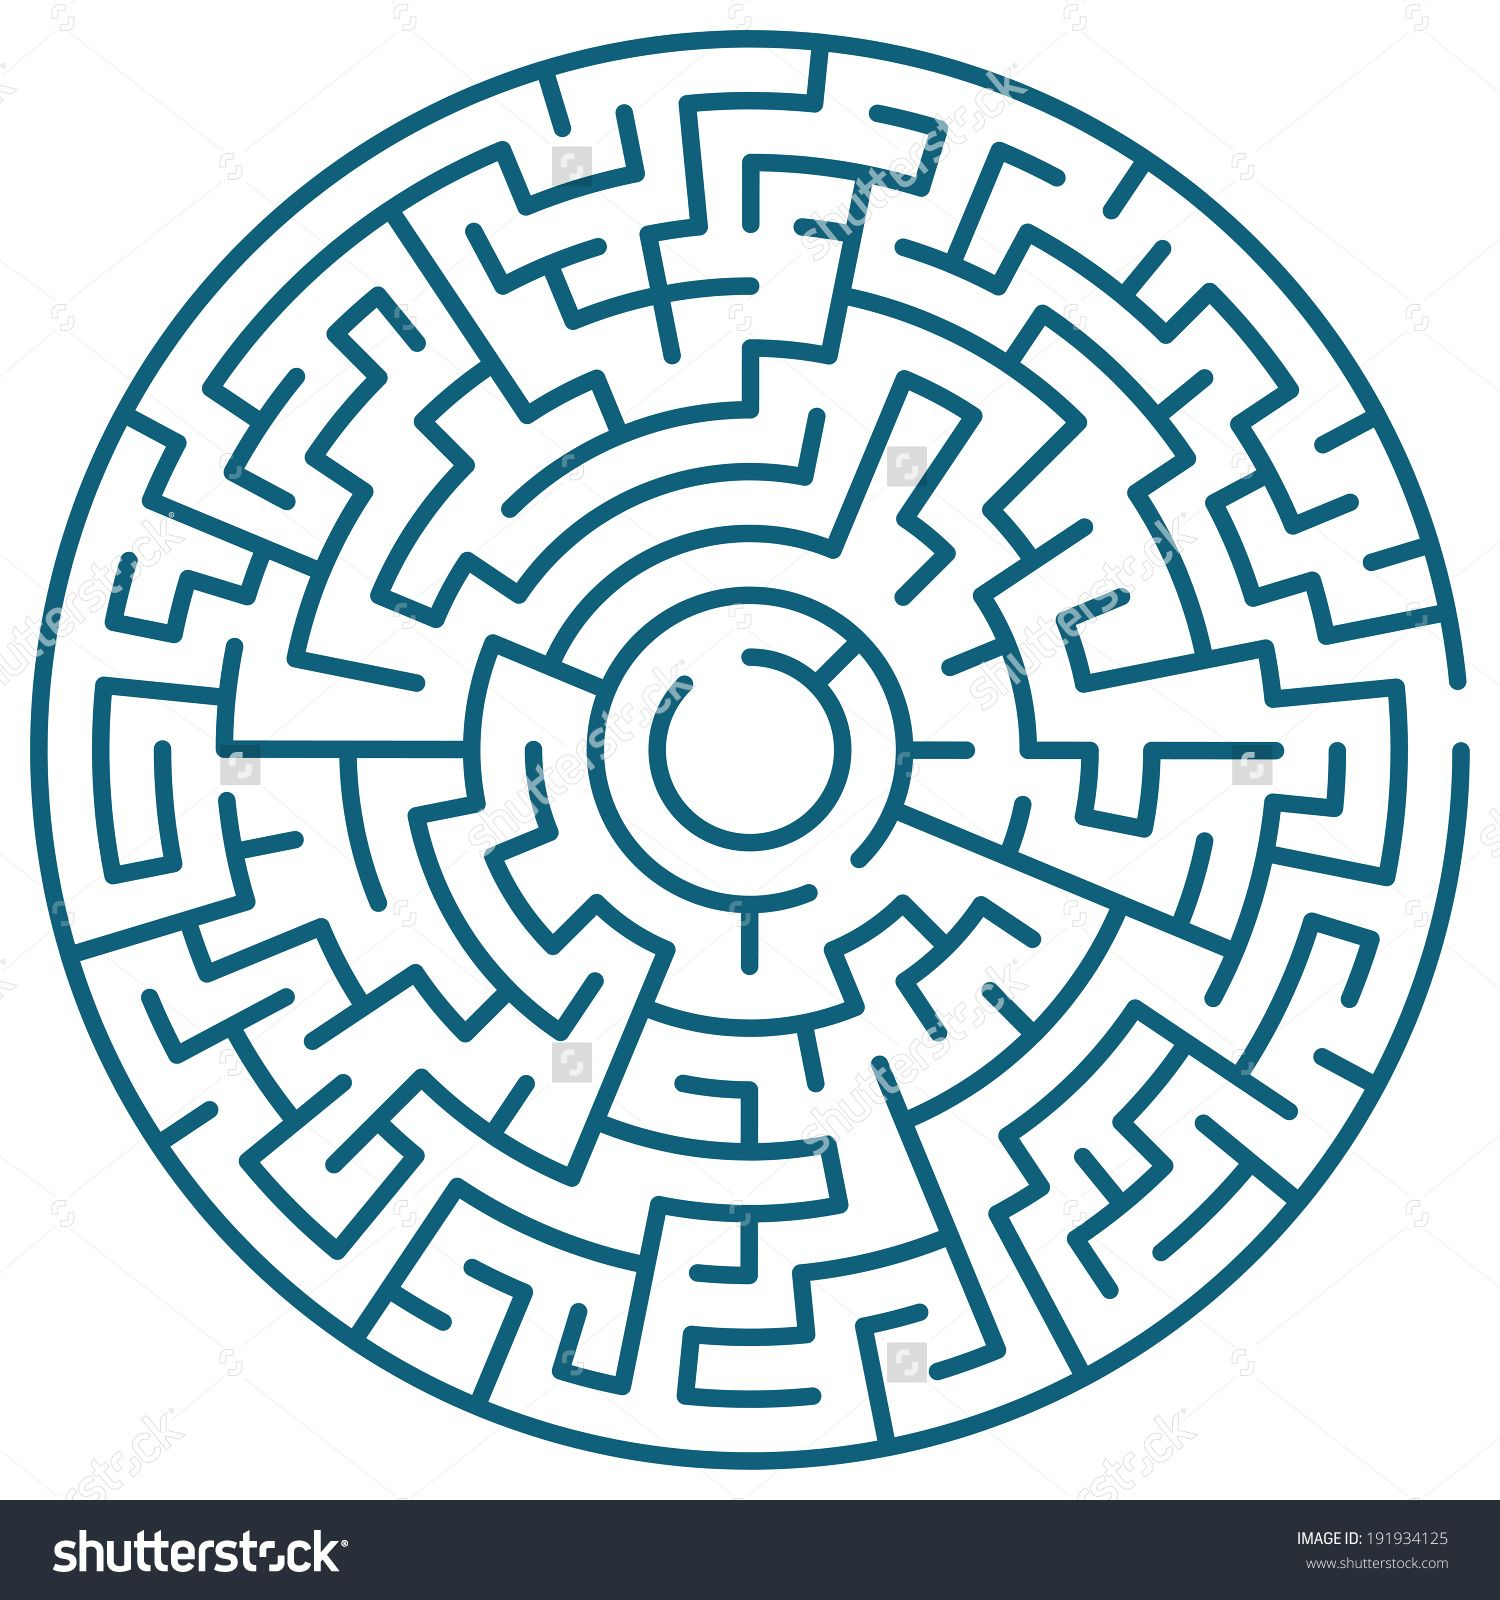 Illustration Of The Round Maze In